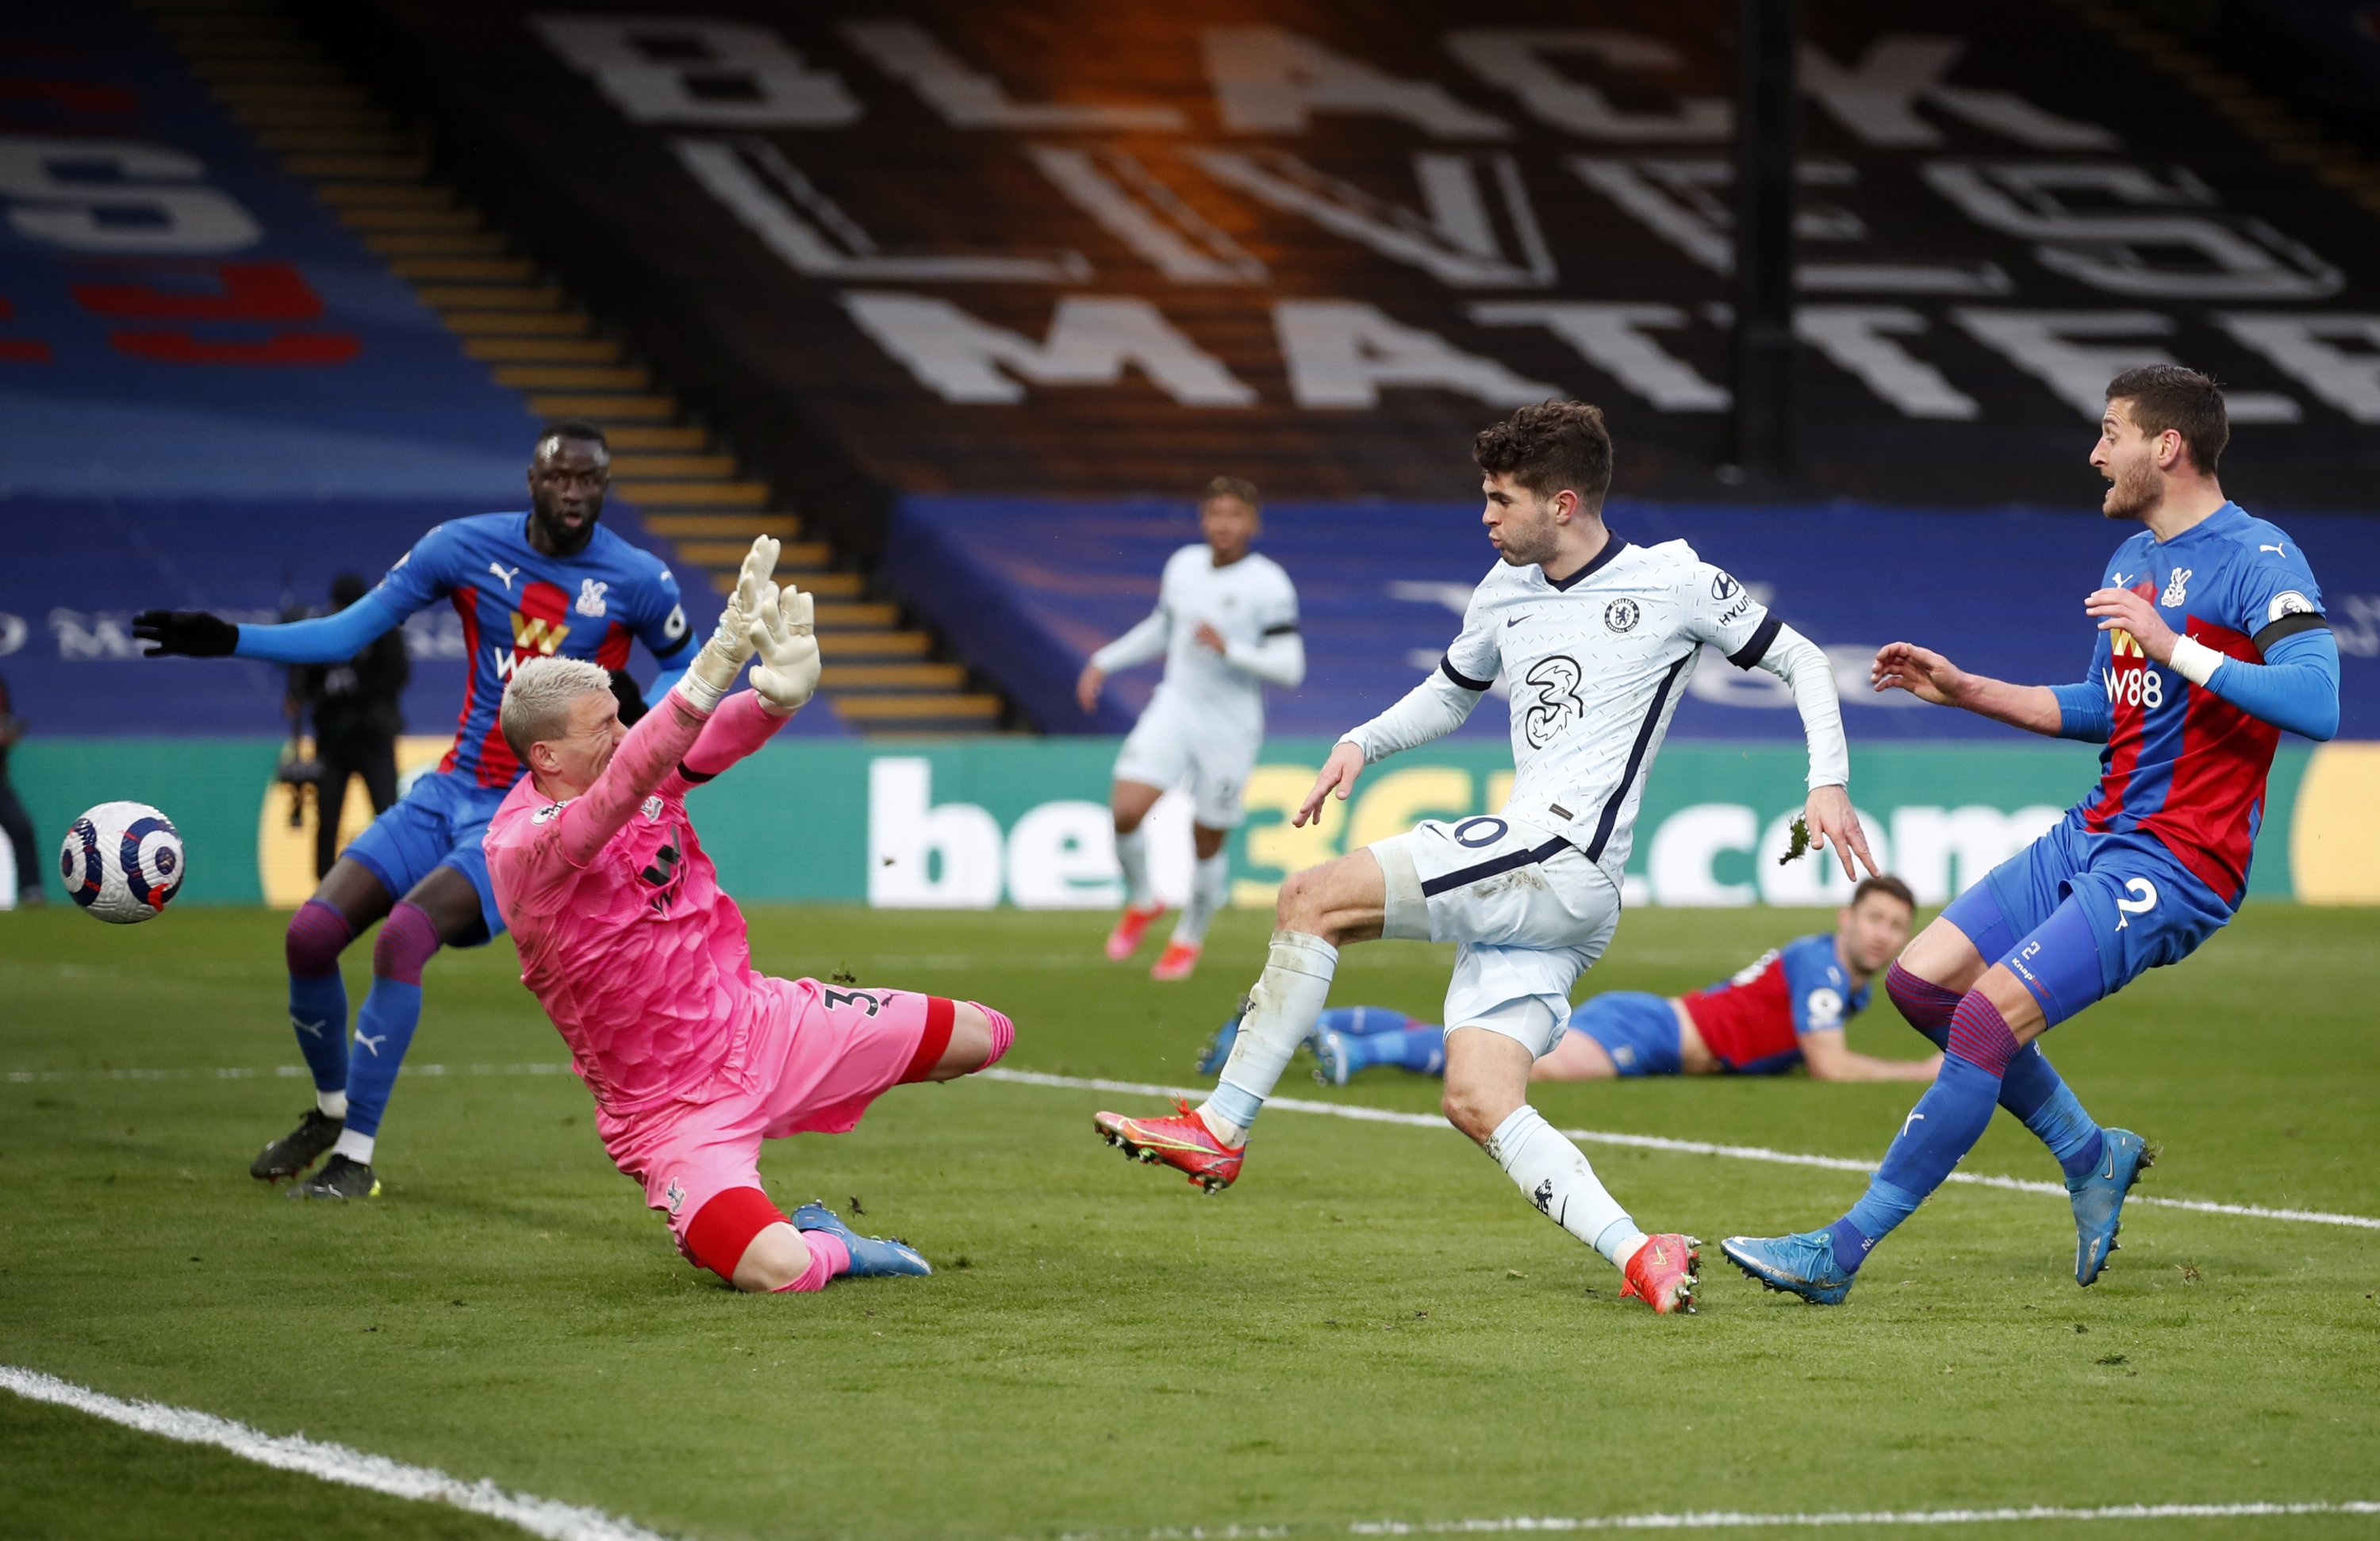 Chelsea's Christian Pulisic (2nd R) scores his side's fourth goal during the English Premier League soccer match between Crystal Palace and Chelsea at Selhurst Park stadium in London, April 10, 2021. (AP/Peter Cziborra/Pool Photo)